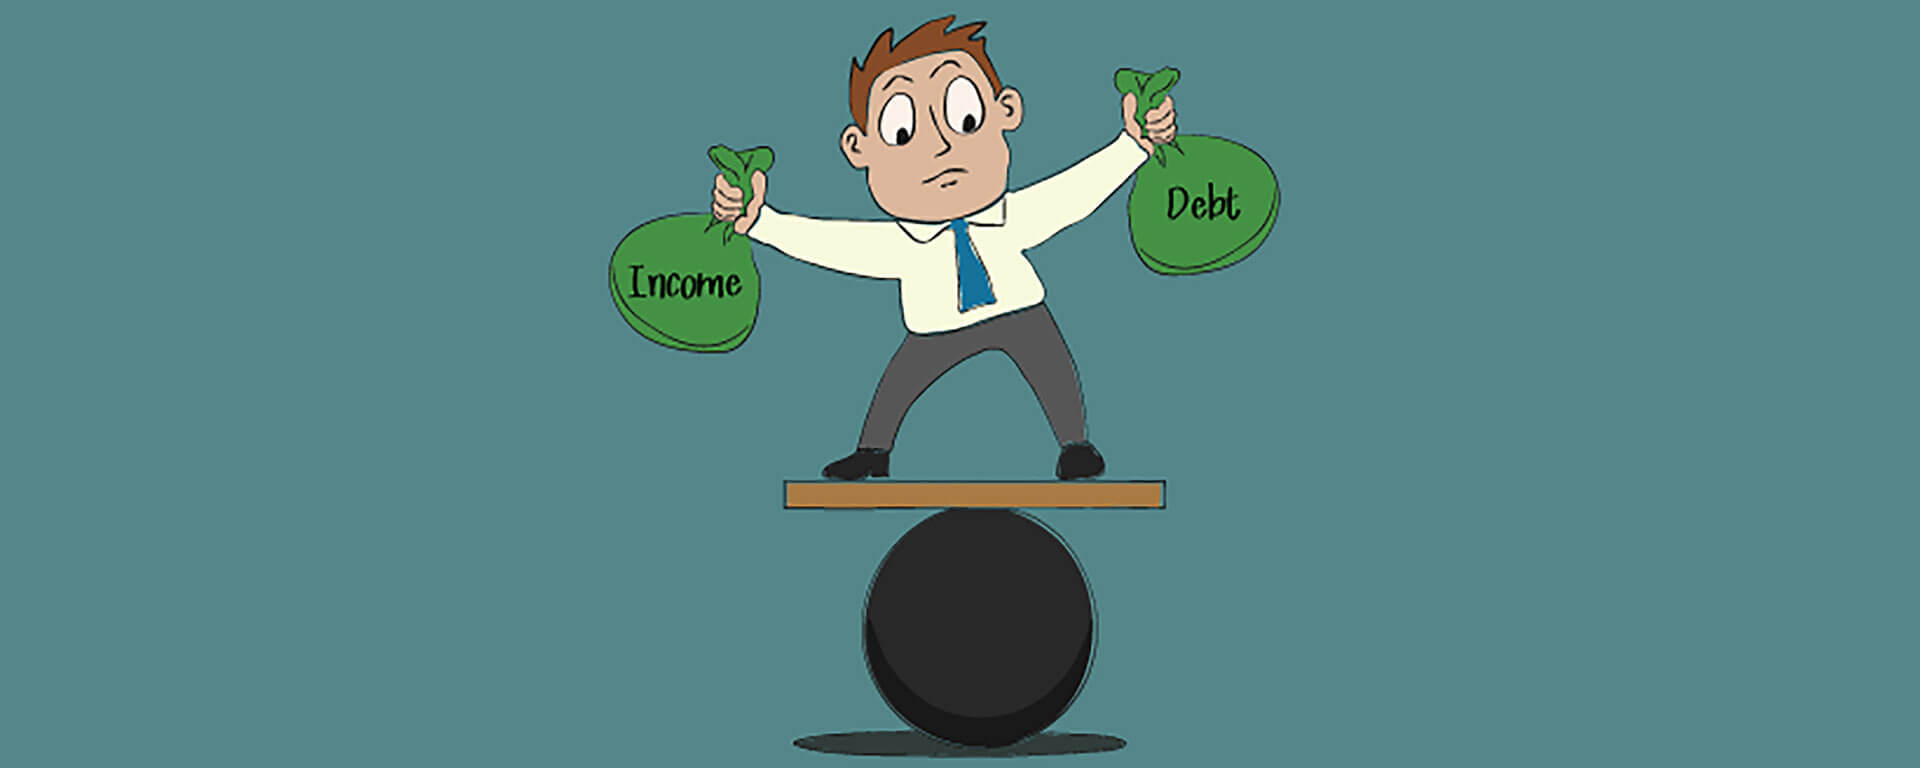 Balancing your income-debt ratio